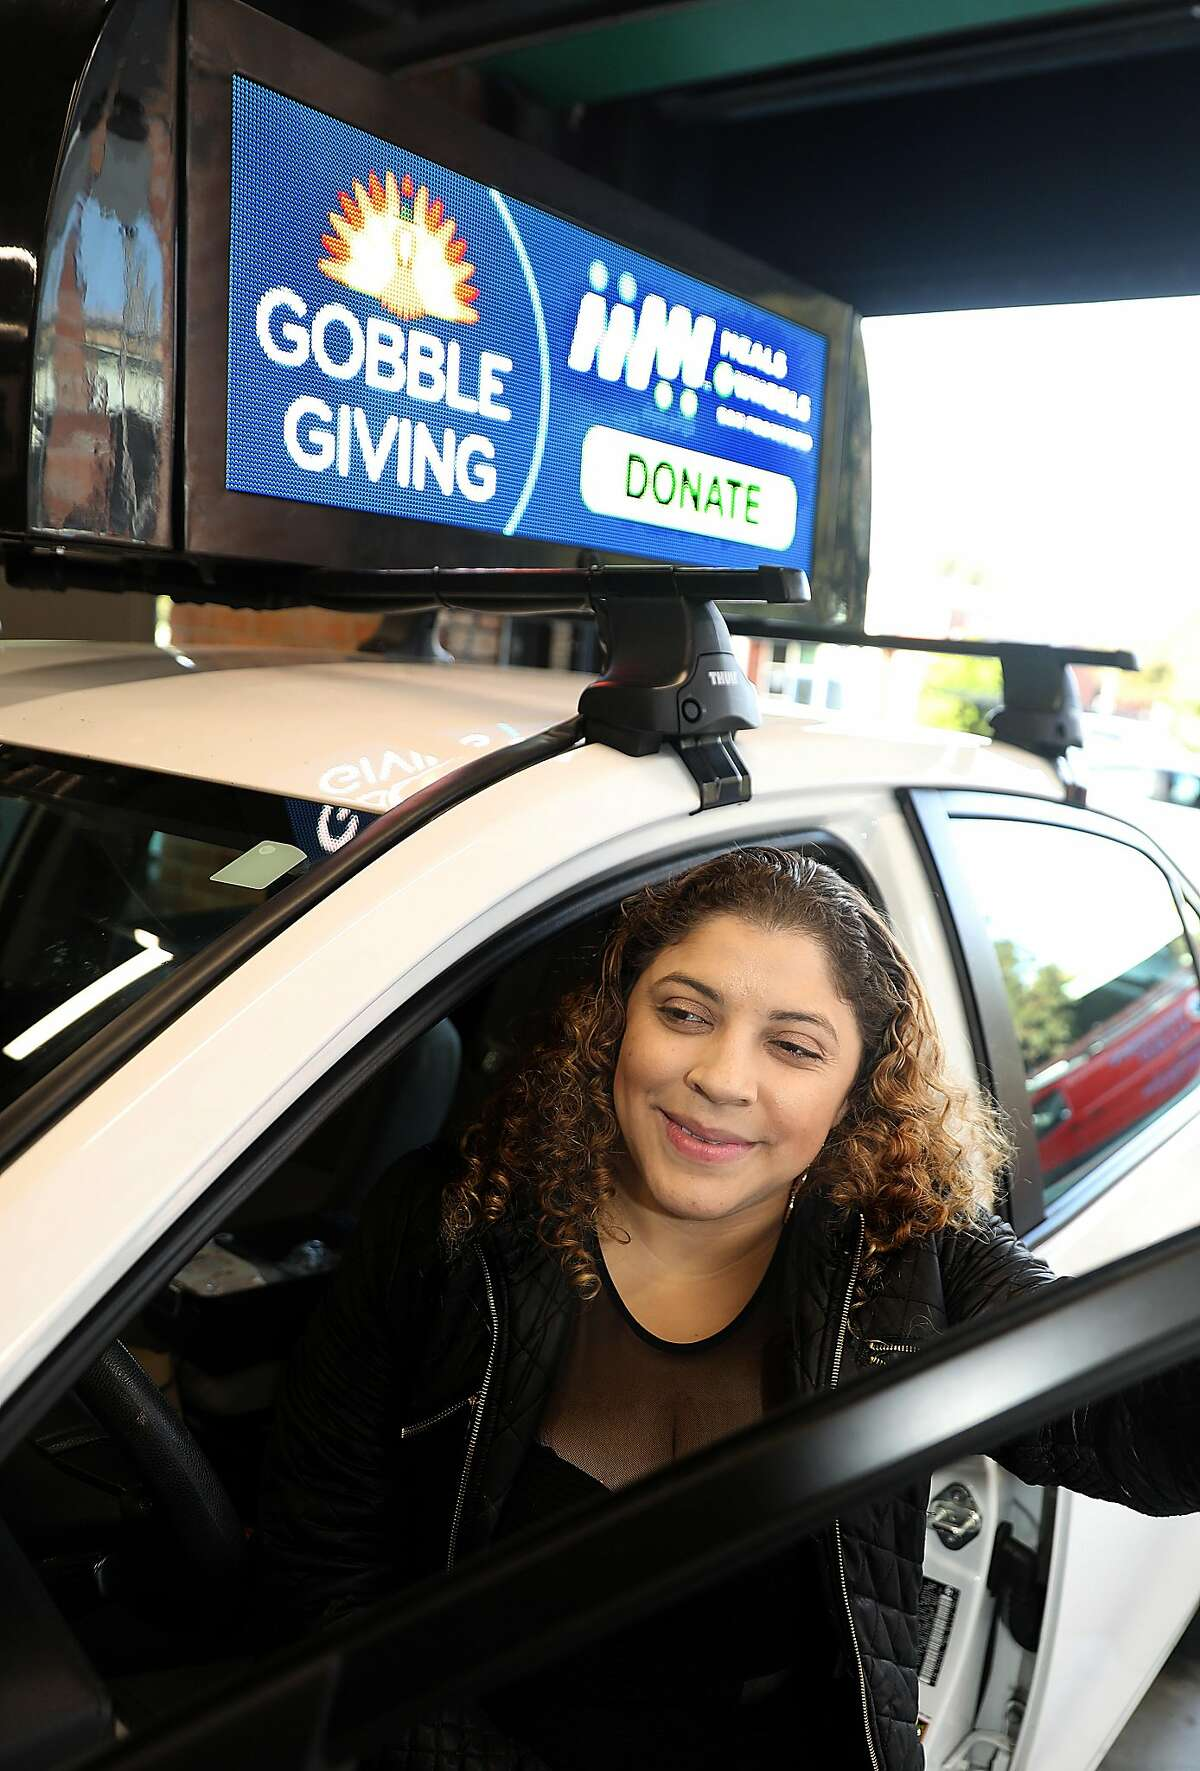 Uber and Lyft driver Jackeline Arana has her car outfitted with display at Firefly on Wednesday, Nov. 28, 2018, in San Francisco, Calif. Firefly makes video advertising screens to place on top of Uber/Lyft cars.